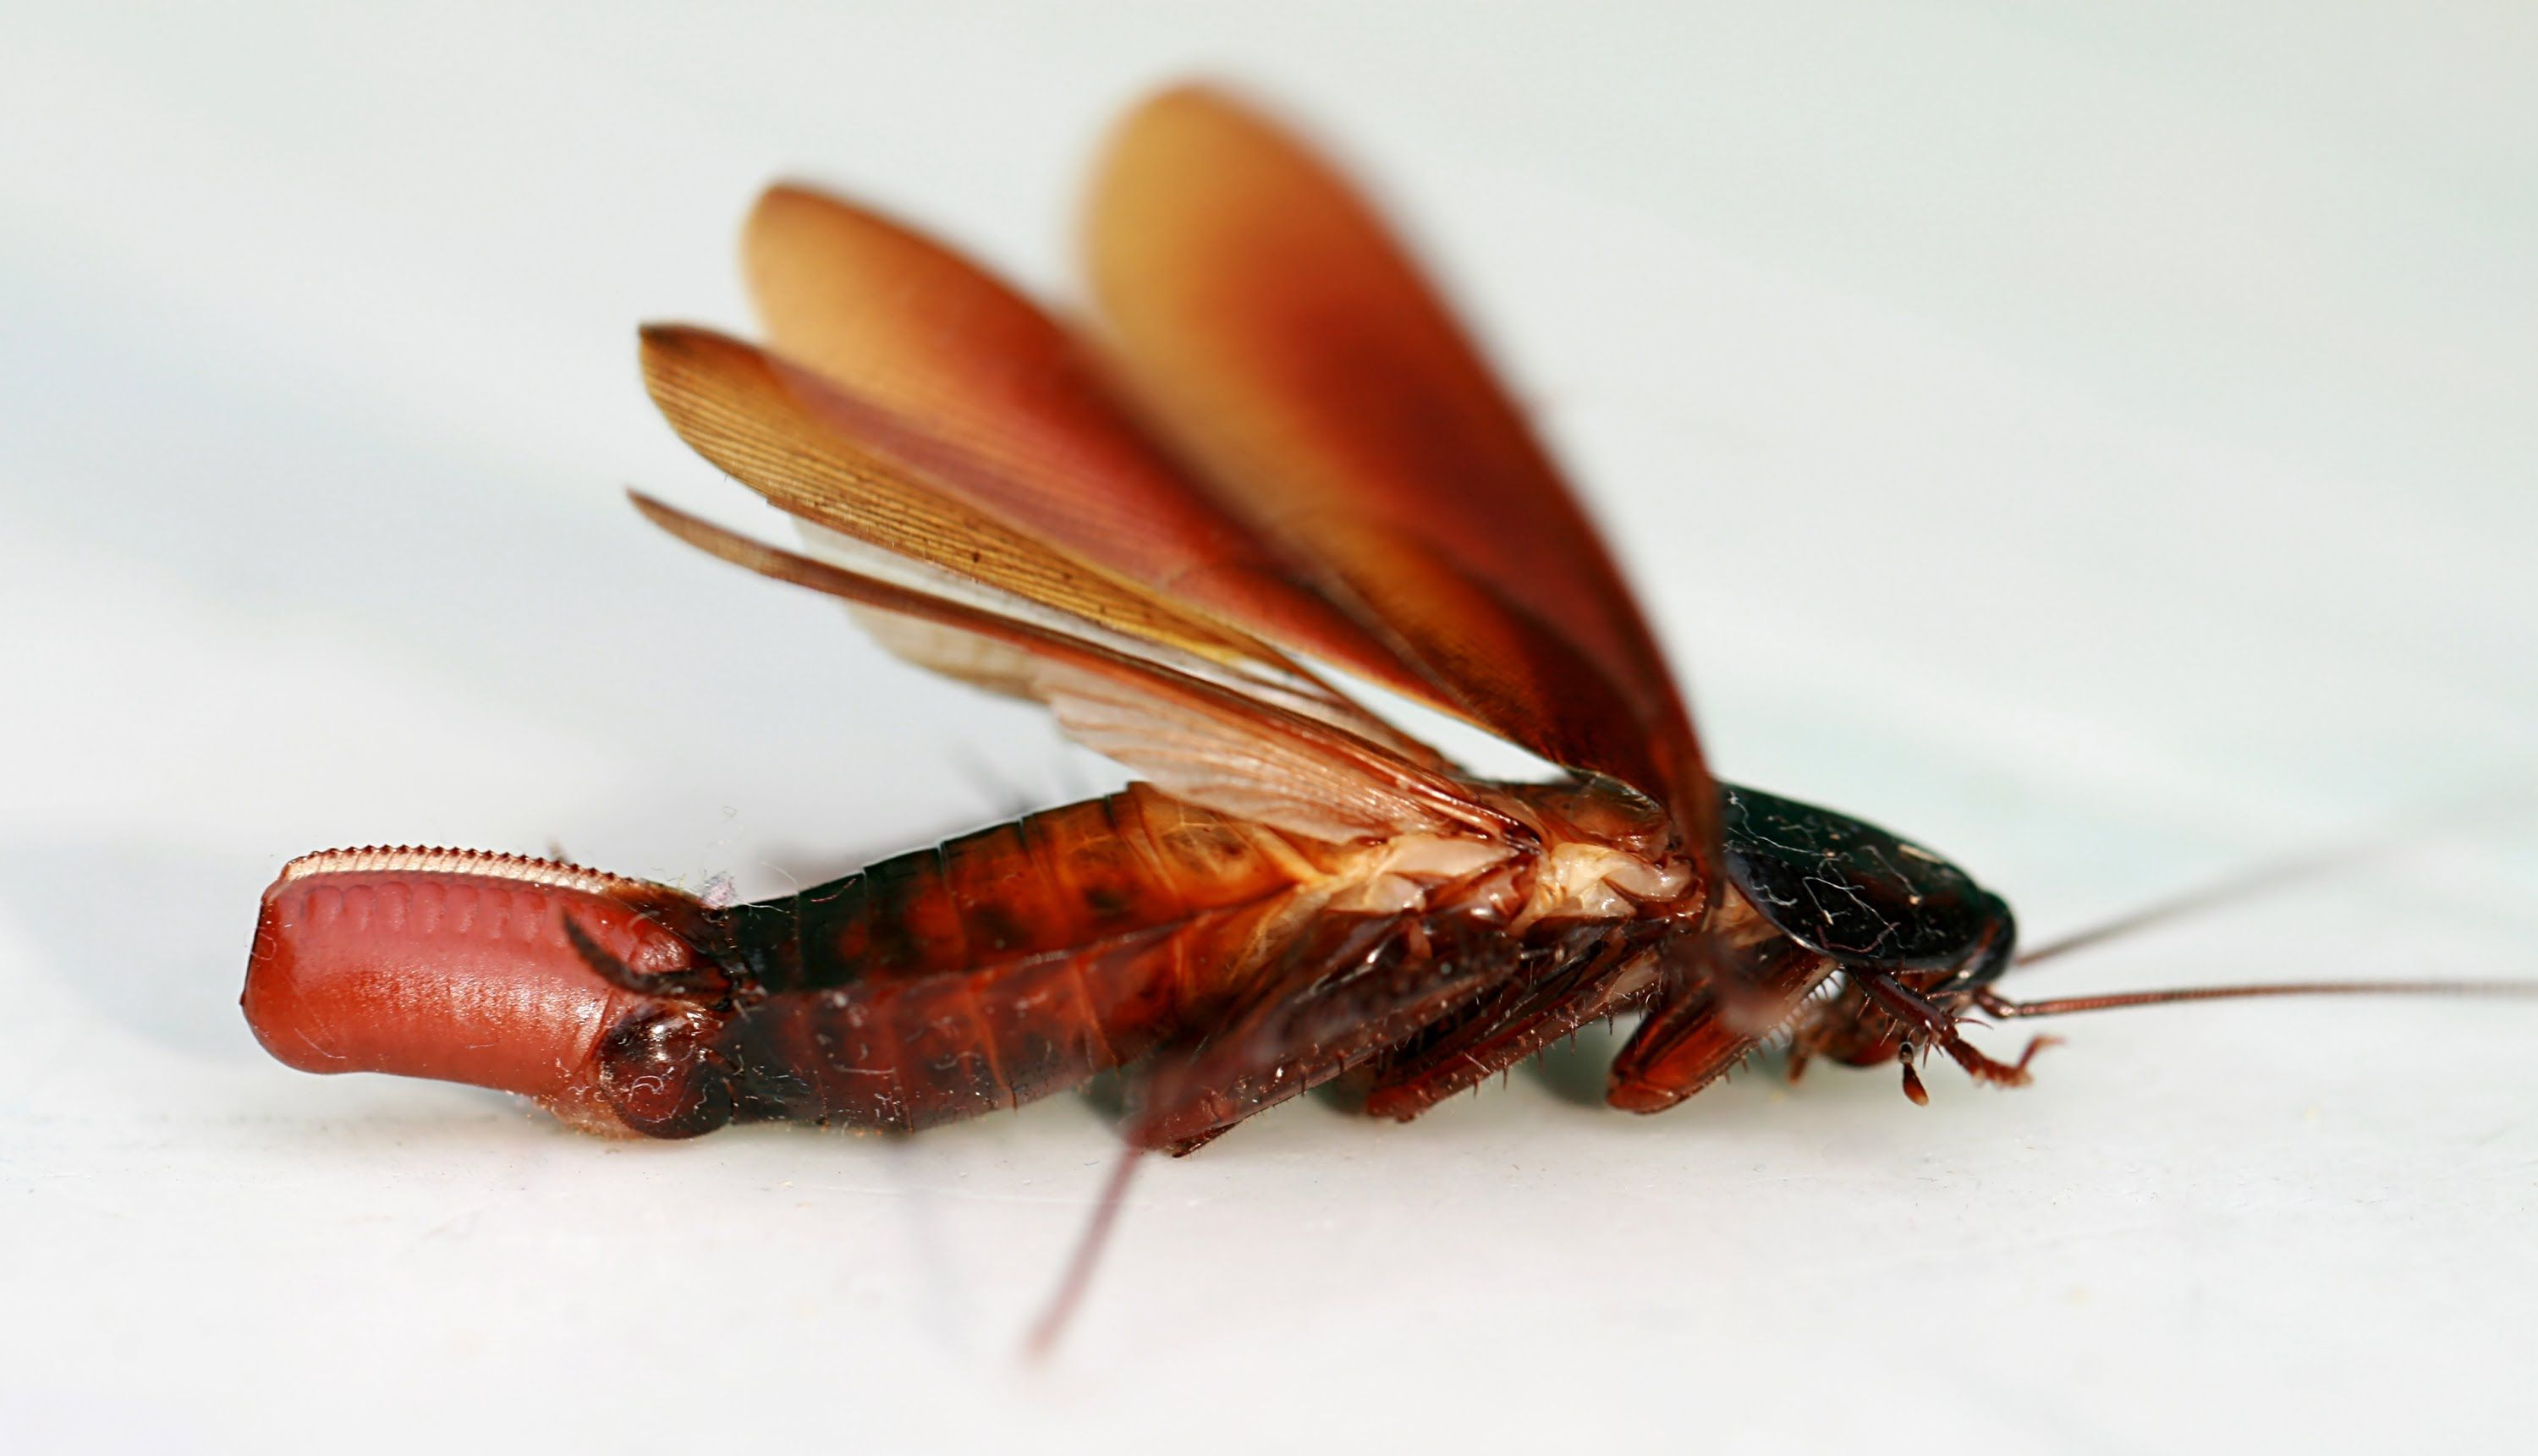 American cockroach is a widely known insect pest infesting